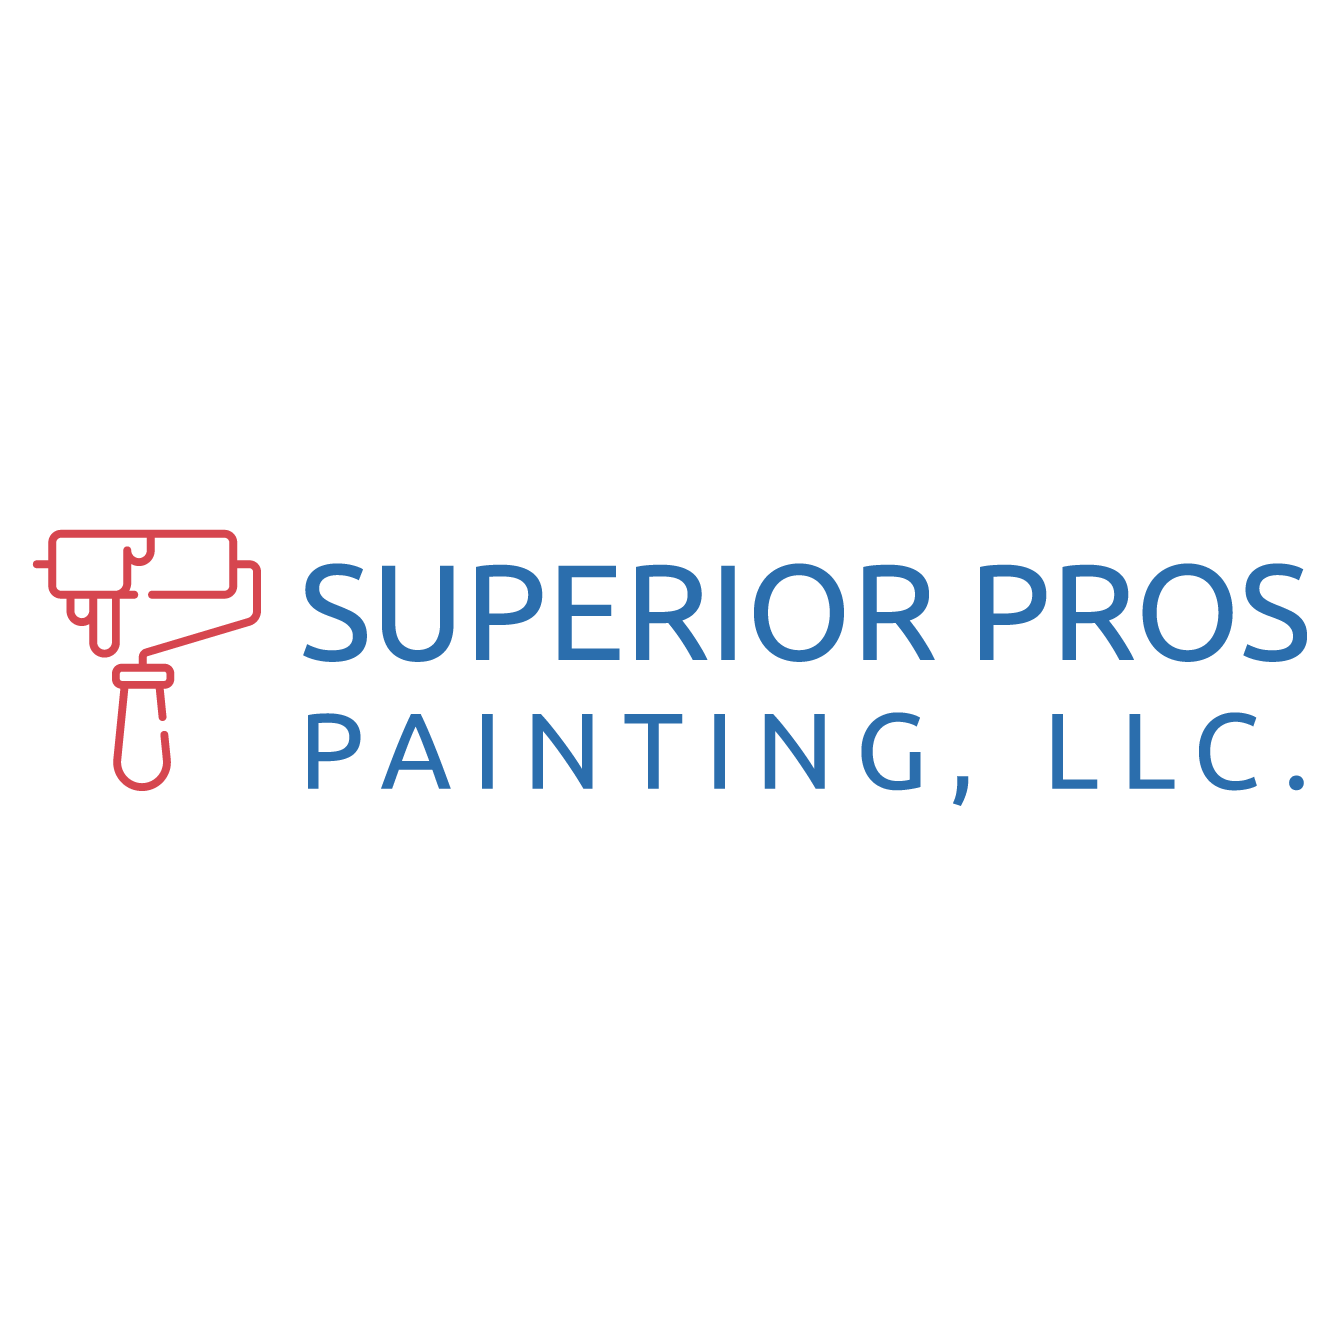 Superior Pros Painting, LLC.